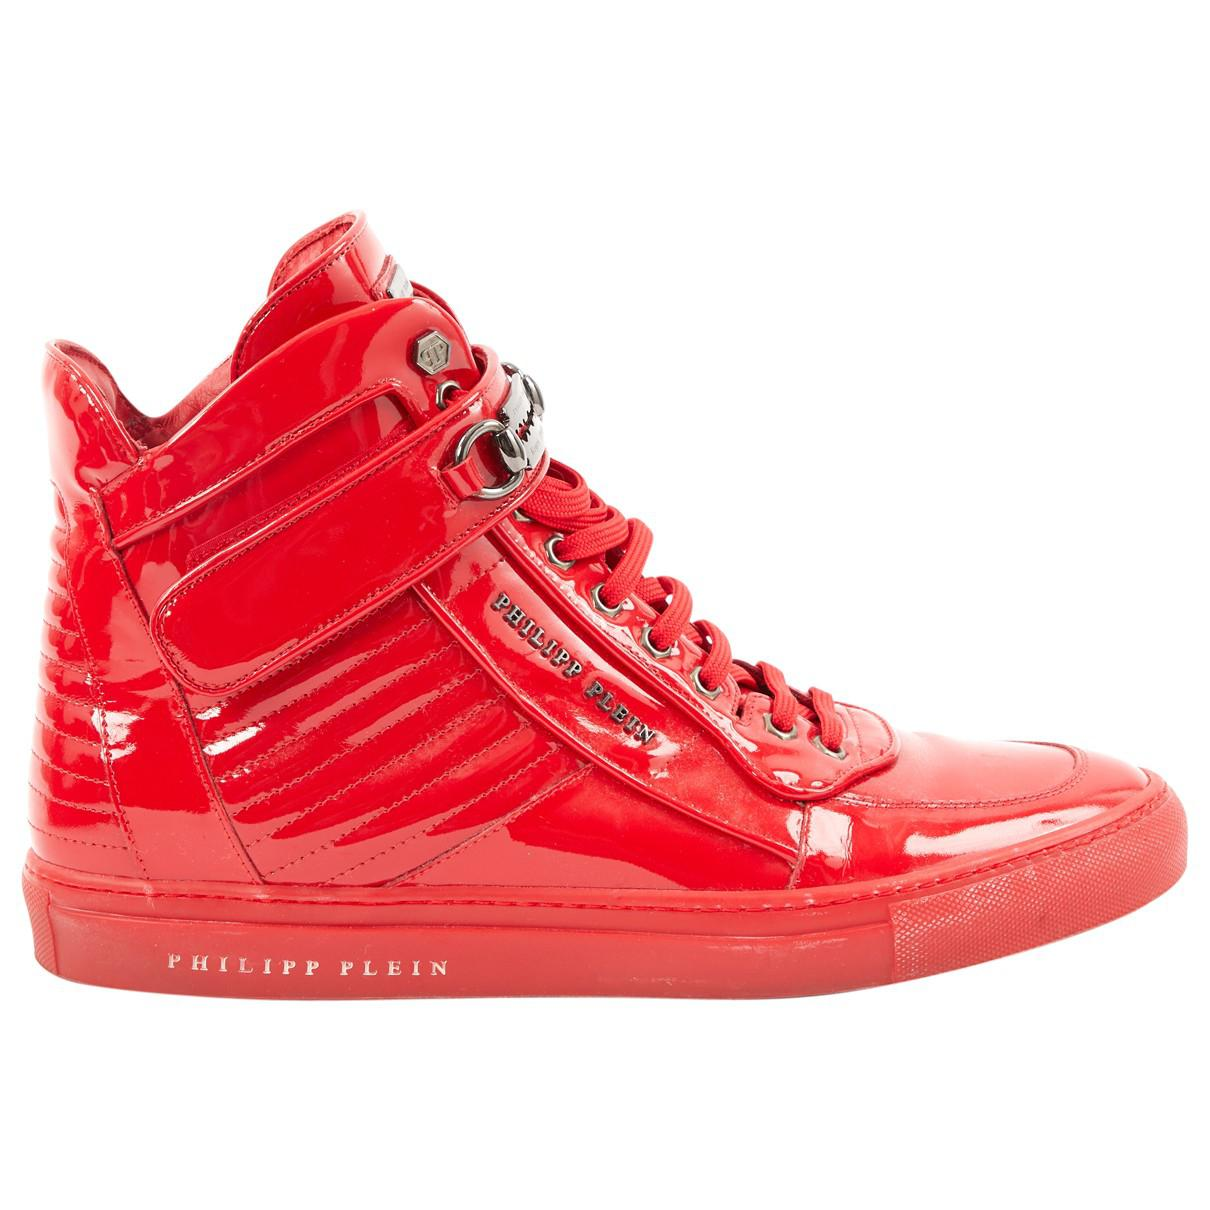 Pre-owned - Patent leather high trainers Philipp Plein Aa0N5aTI